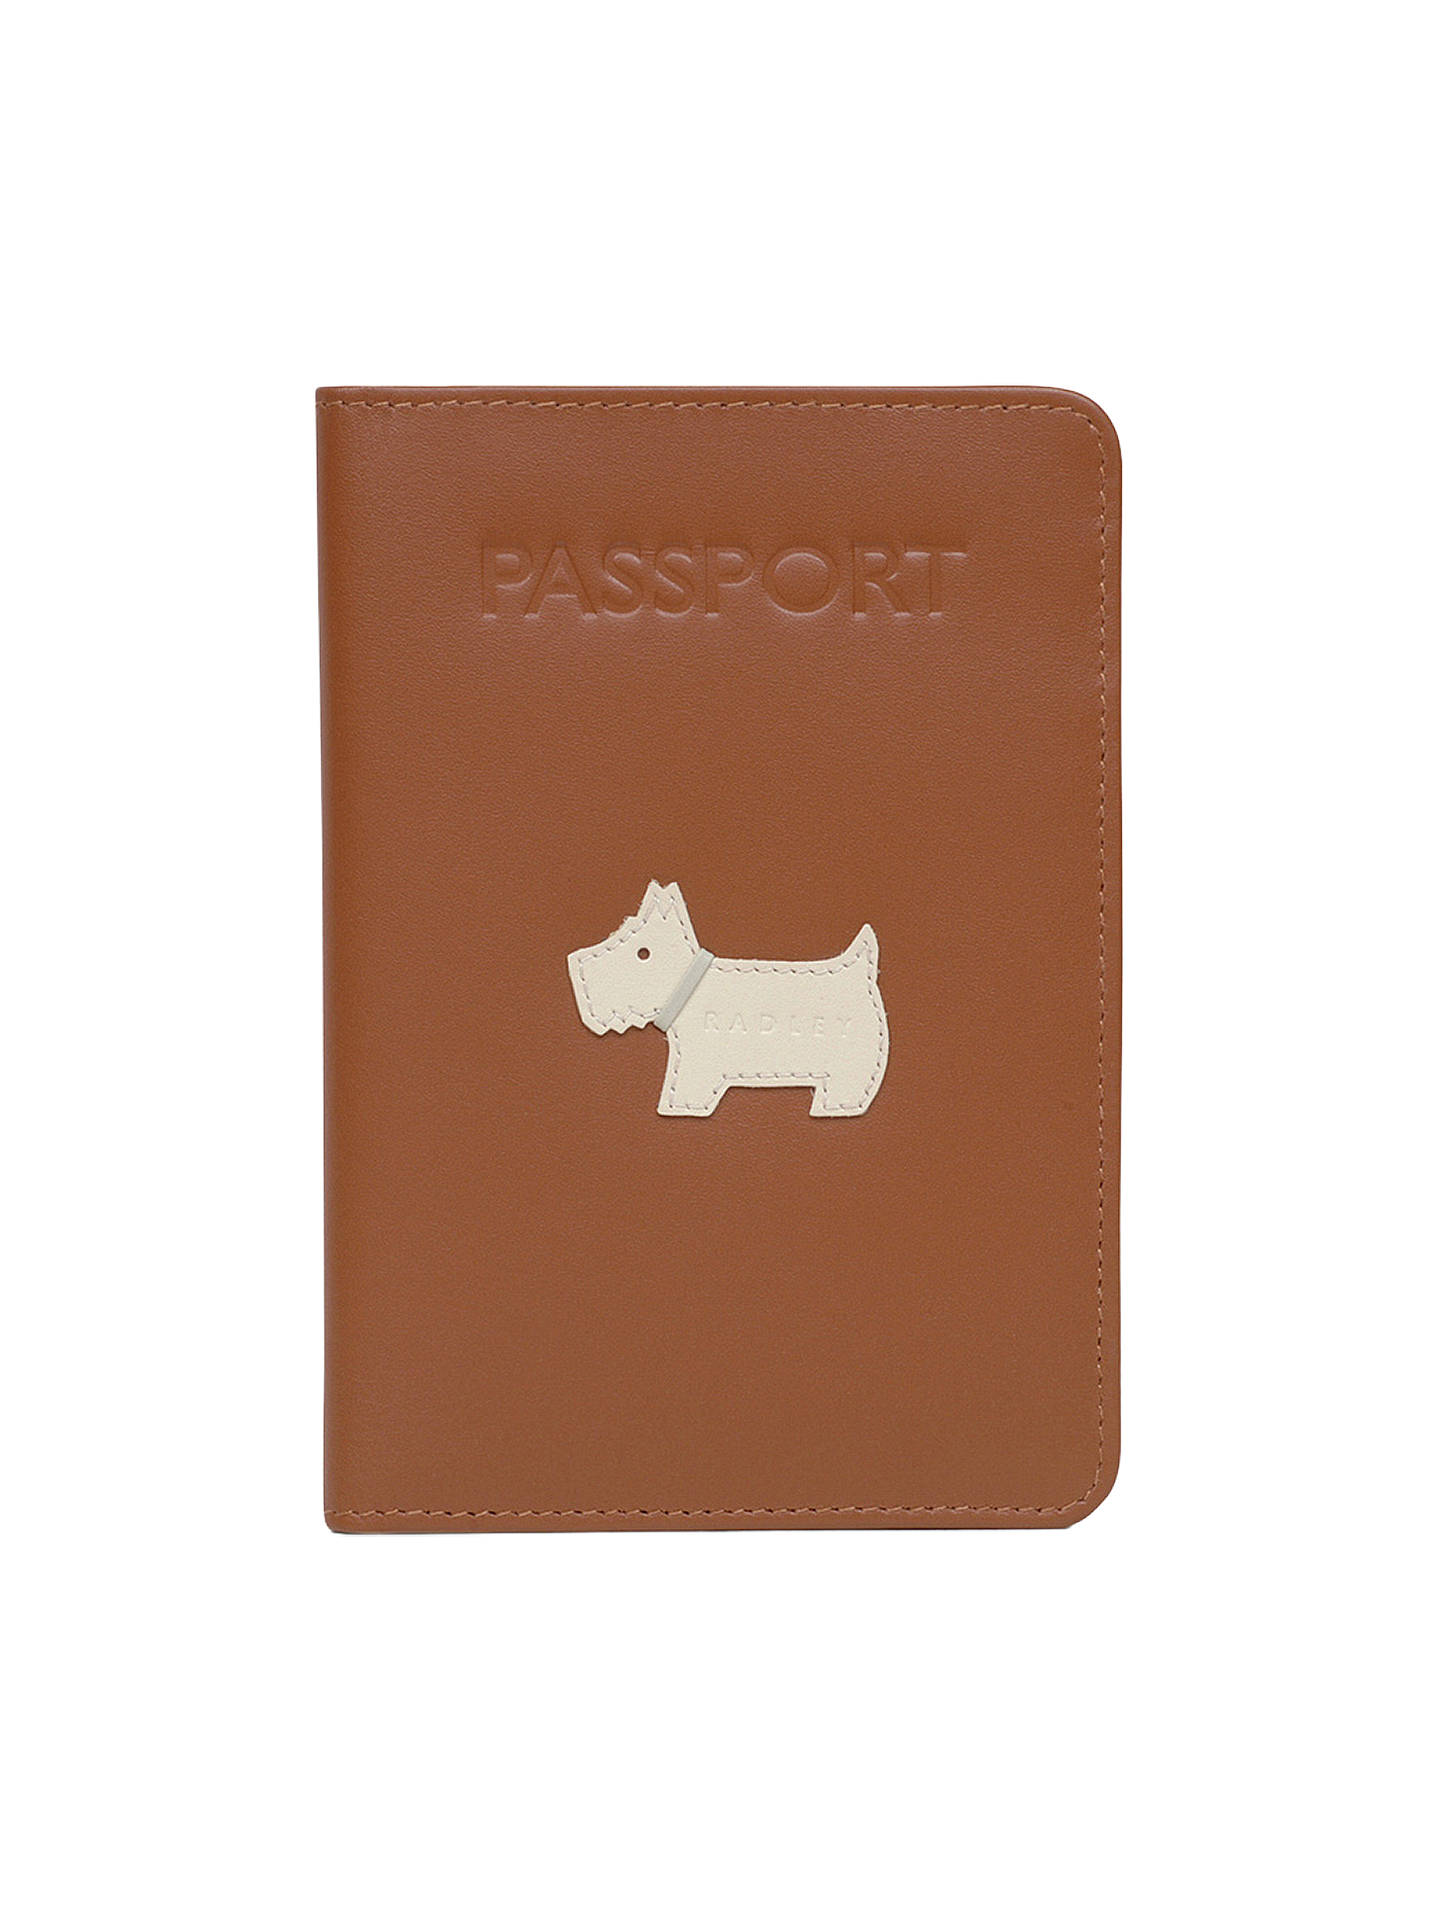 Buy Radley Heritage Dog Leather Passport Cover, Tan Online at johnlewis.com